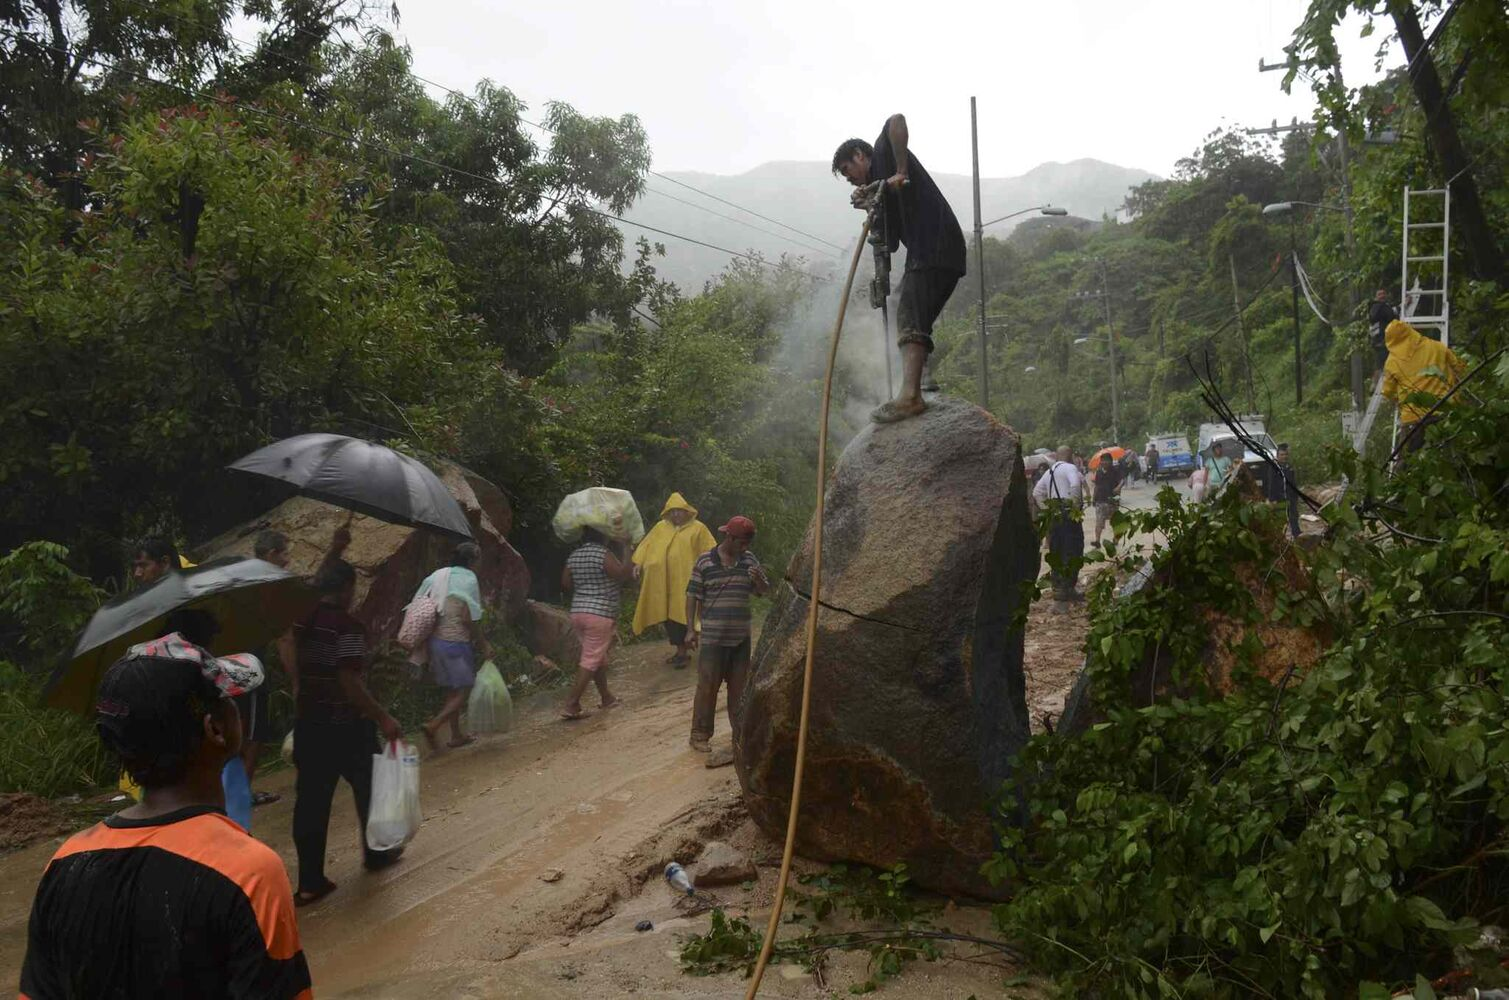 A man works to break apart a boulder with a jackhammer as people make their way on foot, near a road that was cut off after heavy rains brought on by Tropical Storm Manuel triggered a landslide, on the outskirts of Acapulco, Mexico, Monday, Sept. 16, 2013.